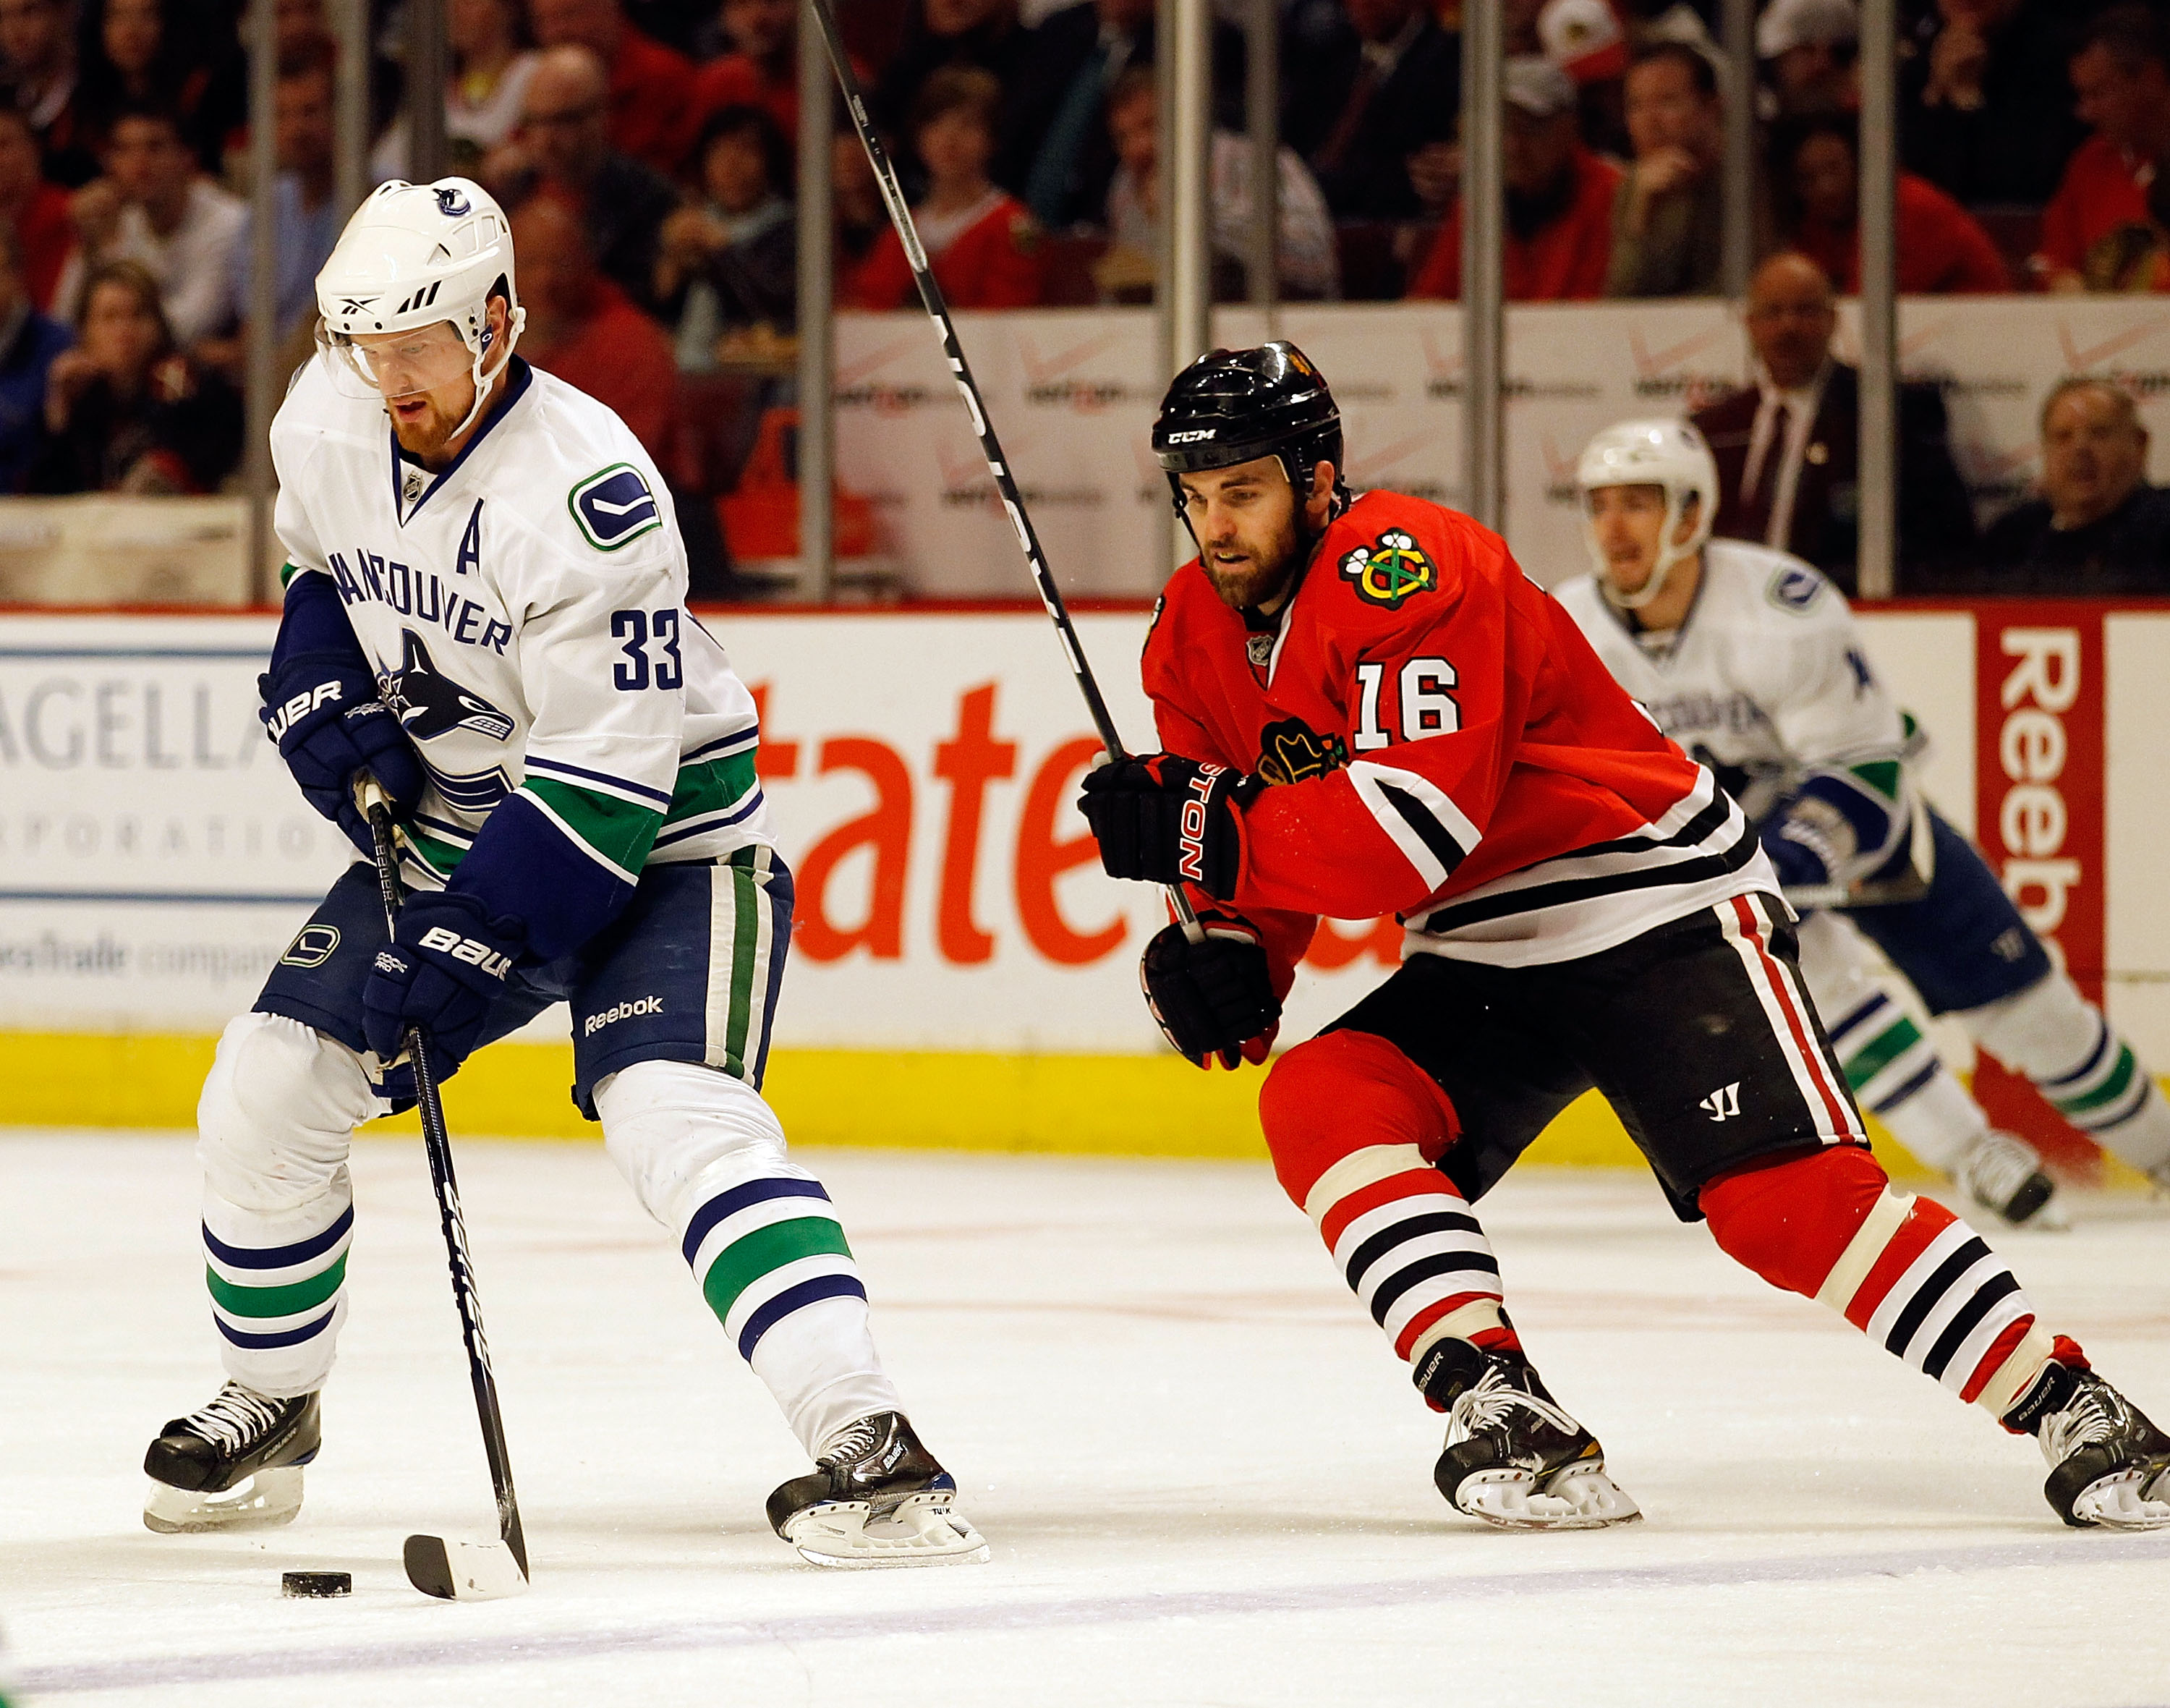 CHICAGO - MAY 09: Henrik Sedin #33 of the Vancouver Canucks moves across the ice with the puck as Andrew Ladd #16 of the Chicago Blackhawks closes in in Game Five of the Western Conference Semifinals during the 2010 NHL Stanley Cup Playoffs at United Cent